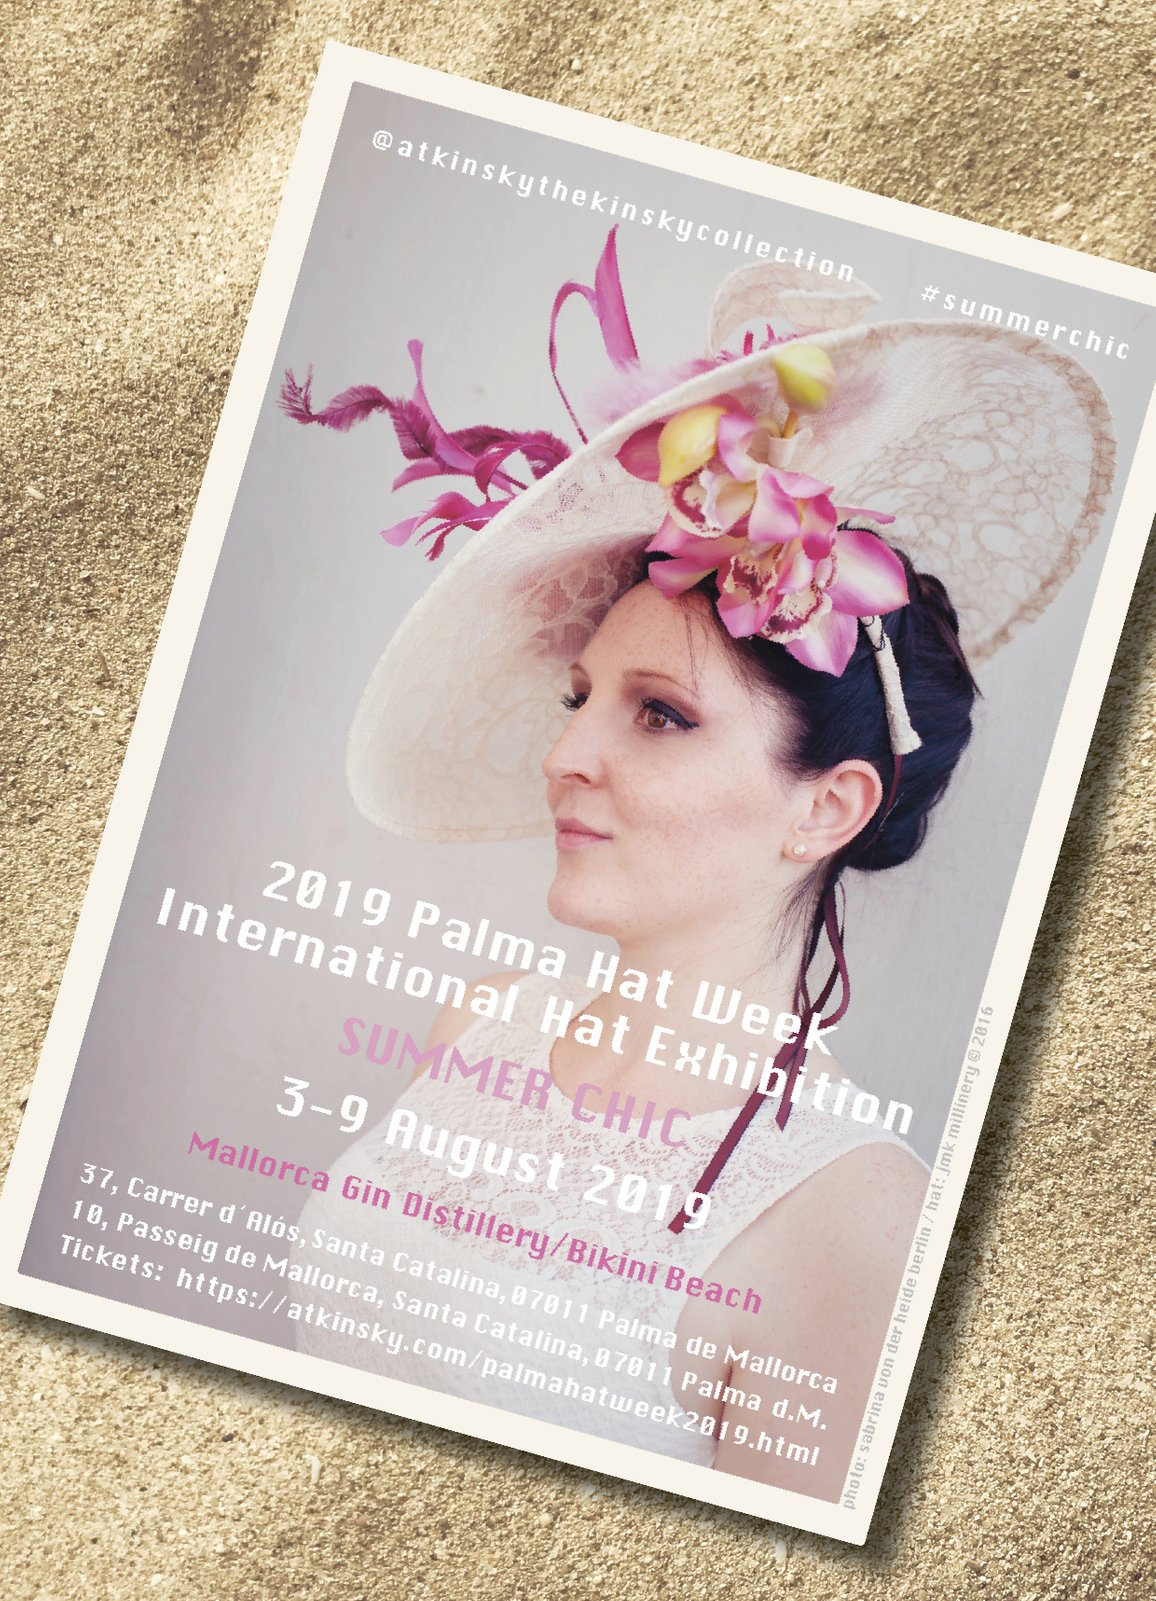 official invitiation flyer to Palma Hat Week, hosted by atKinsky die Sammlung Kinsky